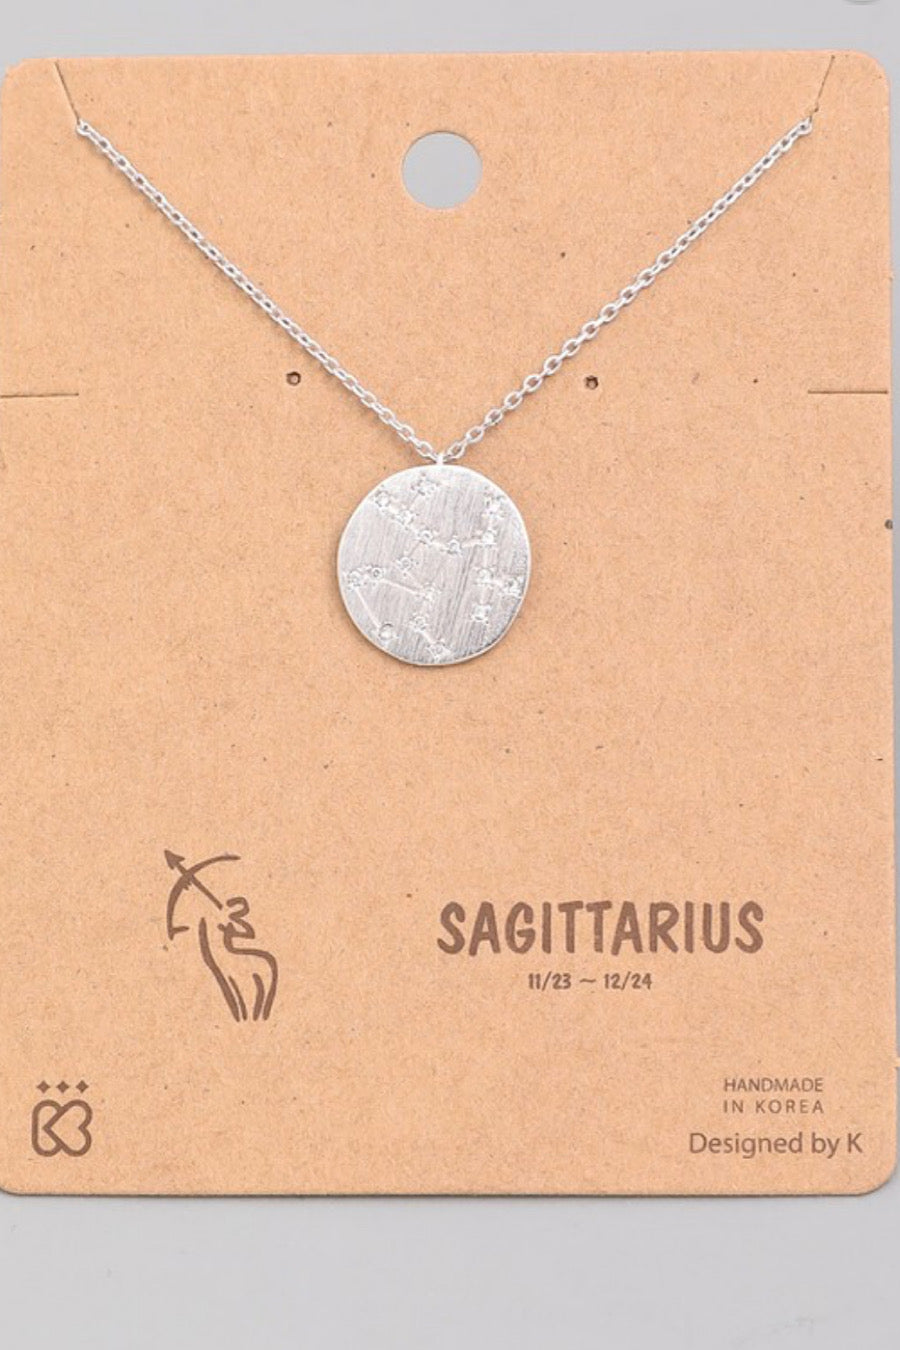 Constellation Necklace in Zodiac Signs